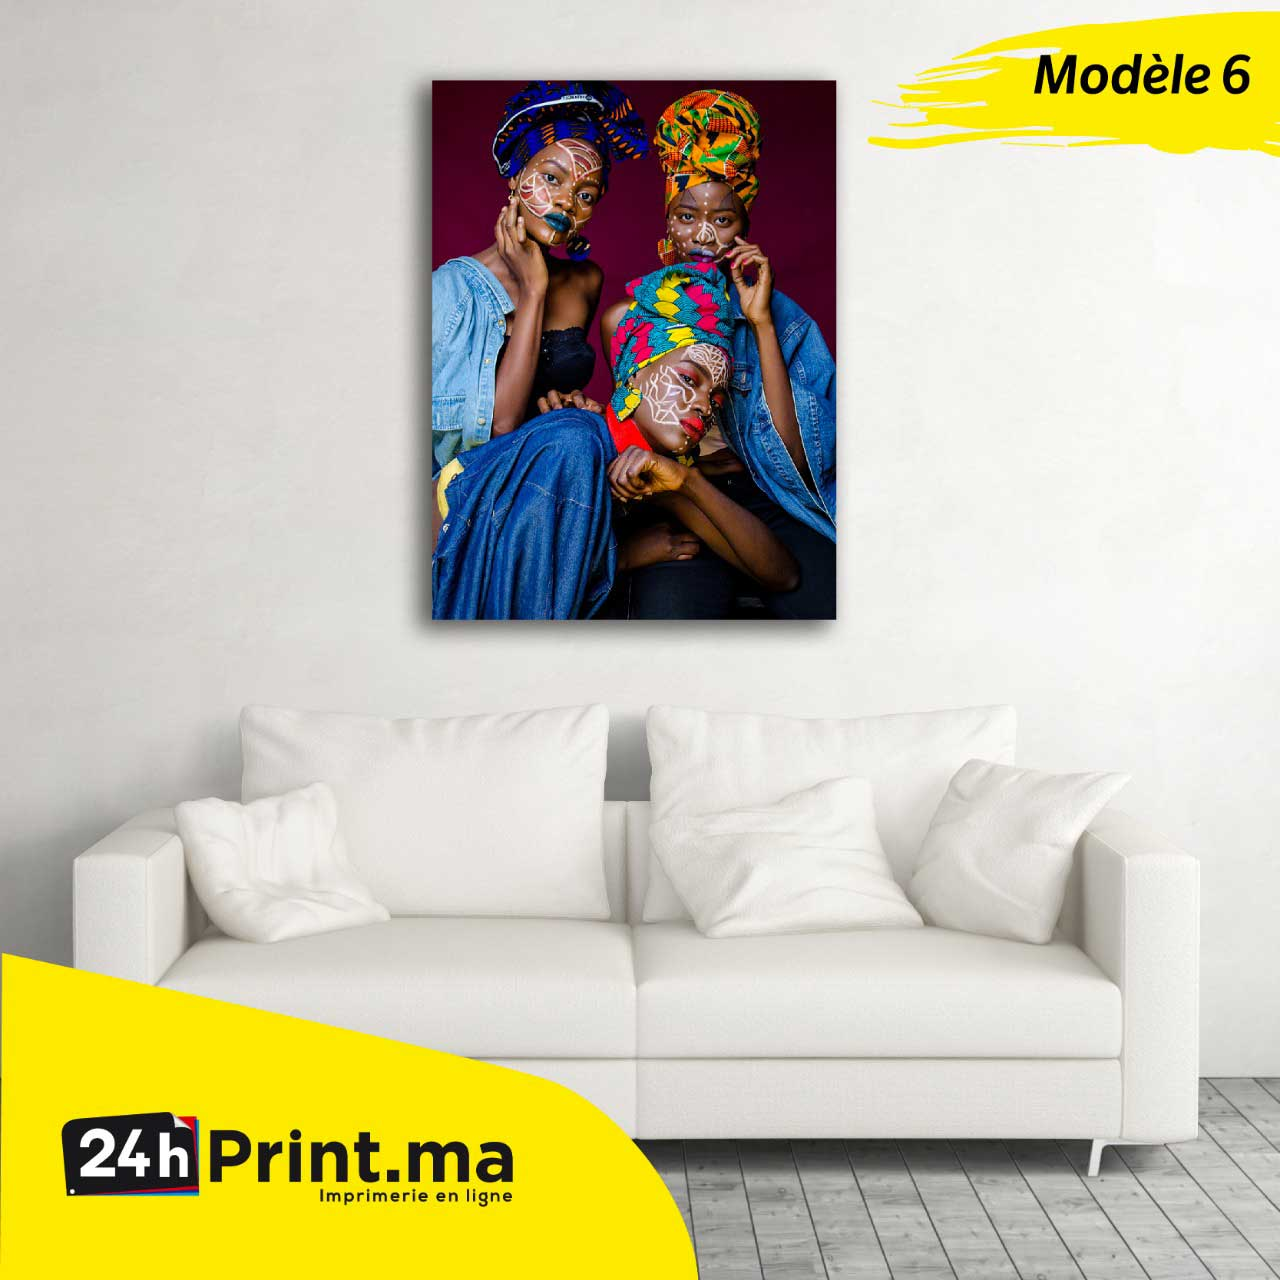 https://www.24hprint.ma/images/products_gallery_images/628.jpg